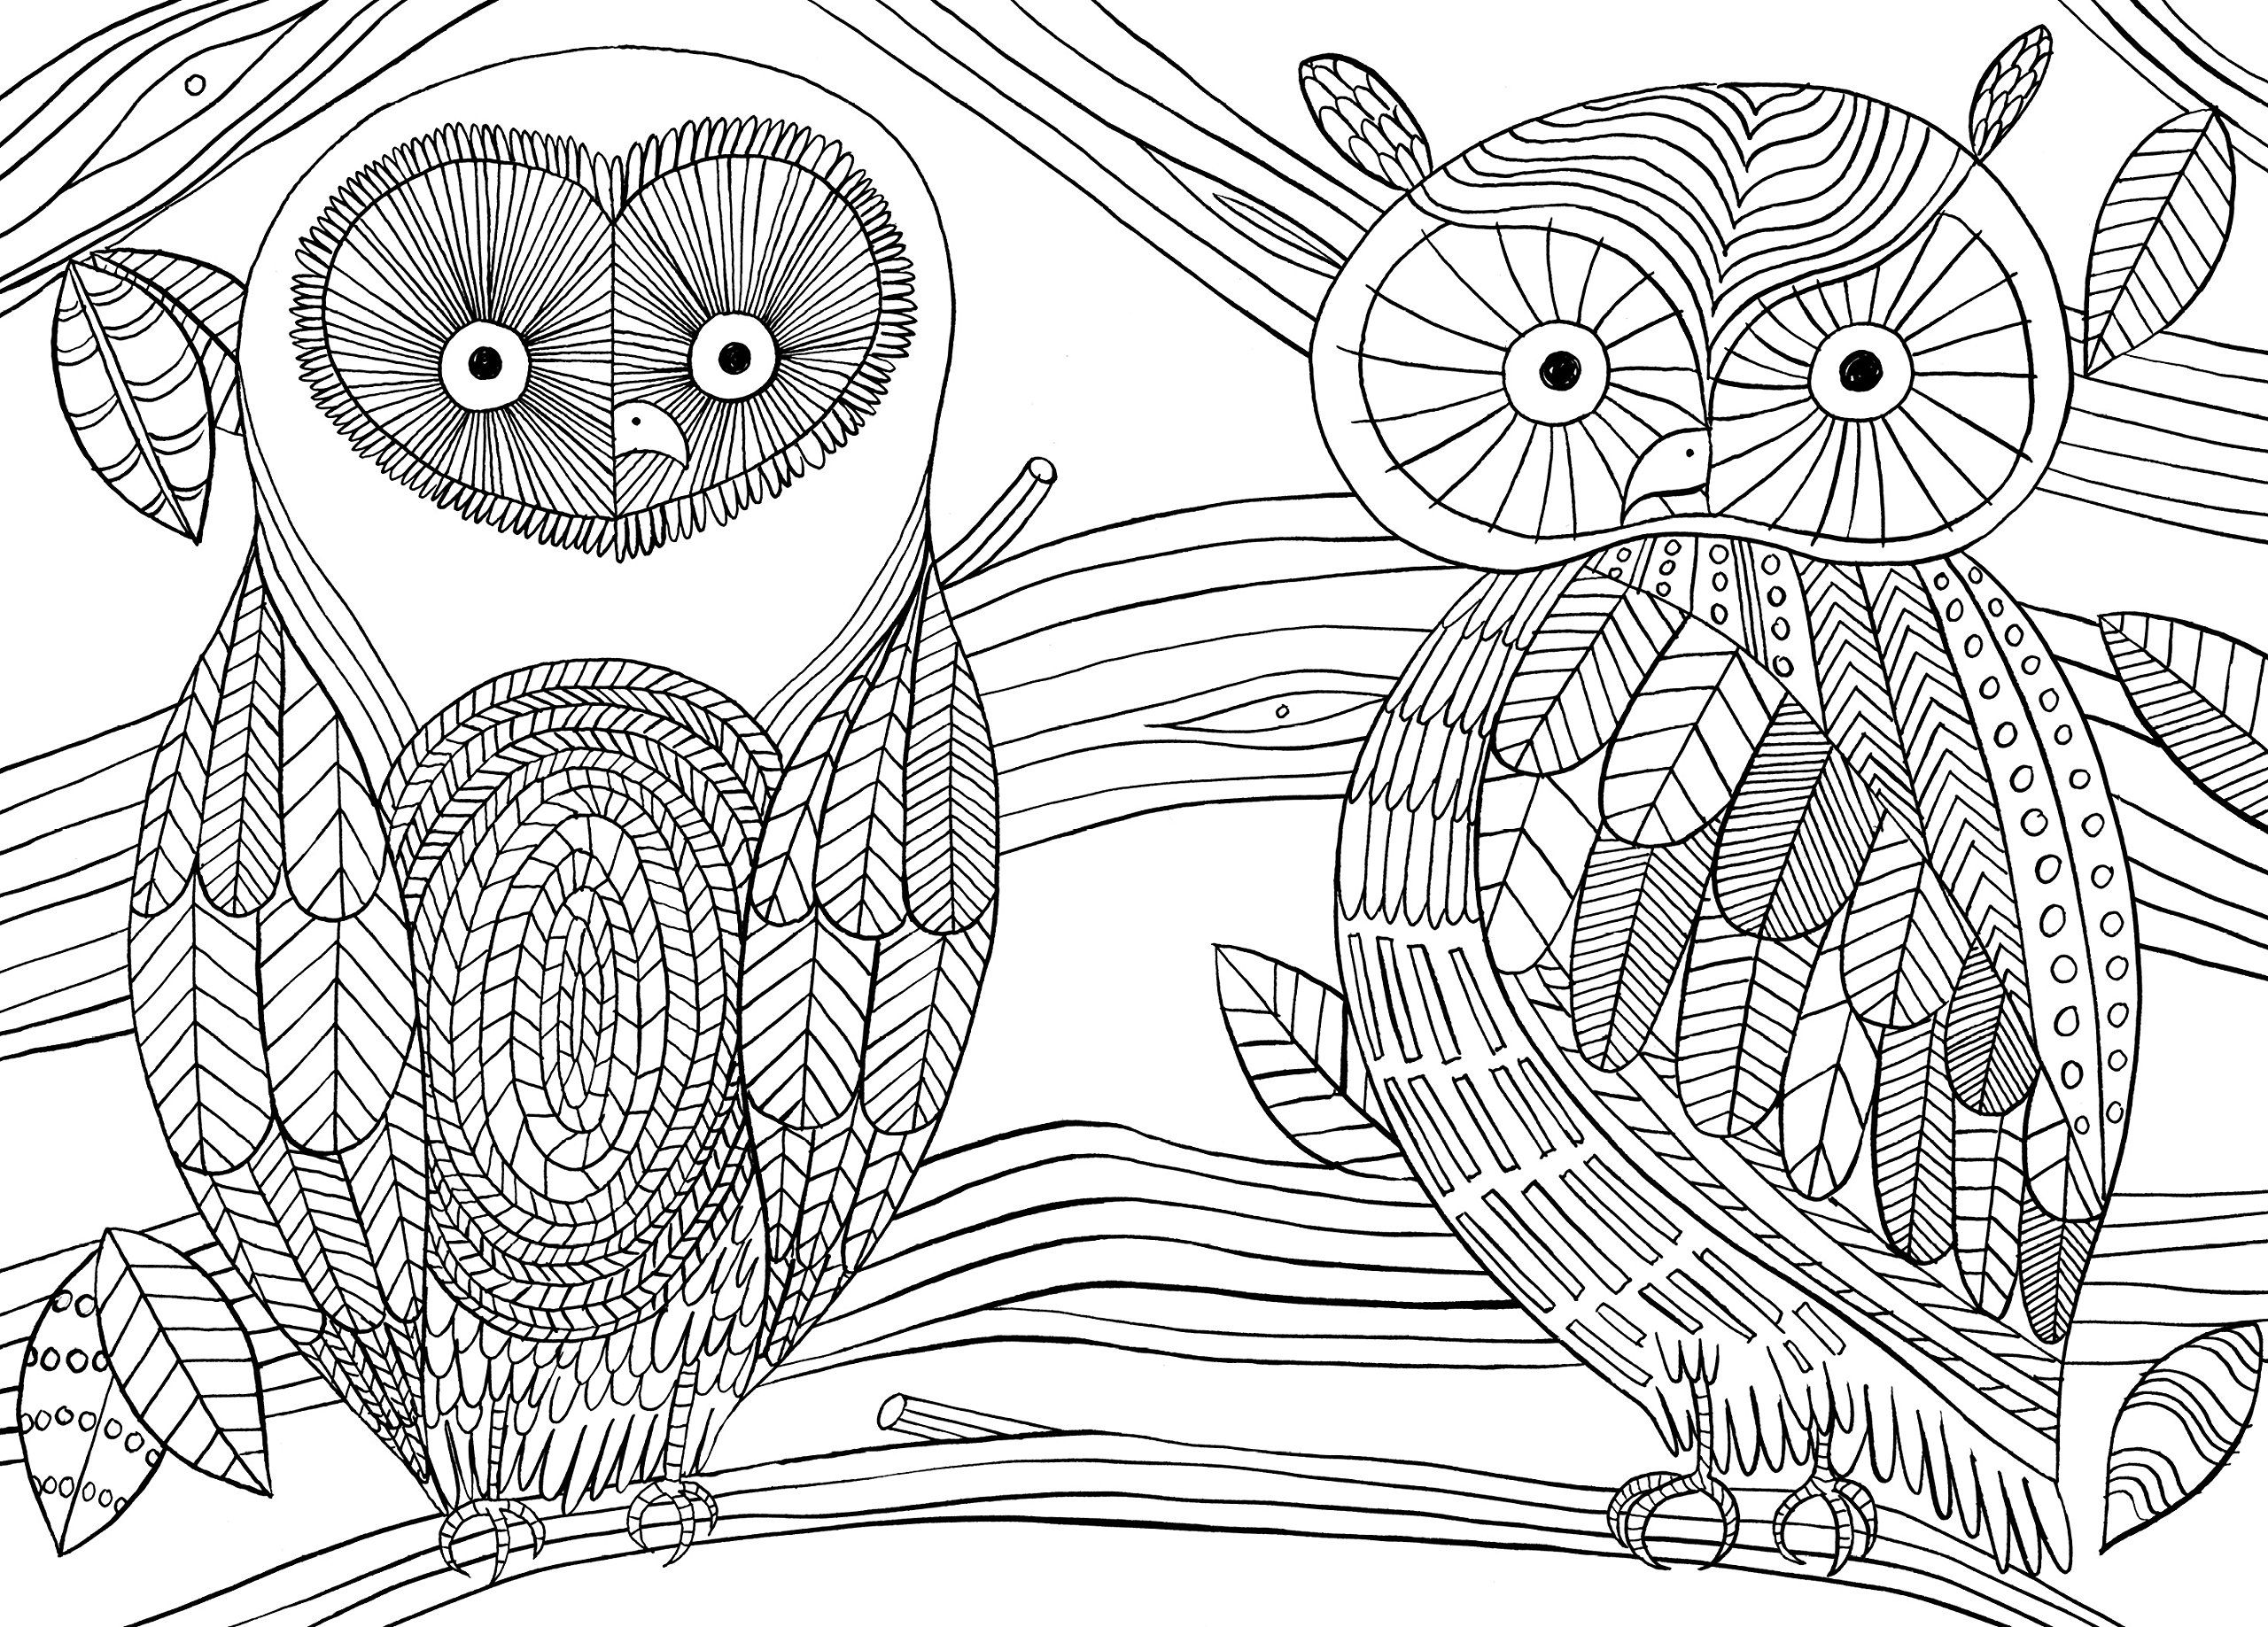 More Mindfulness Colouring More Anti Stress Art Therapy